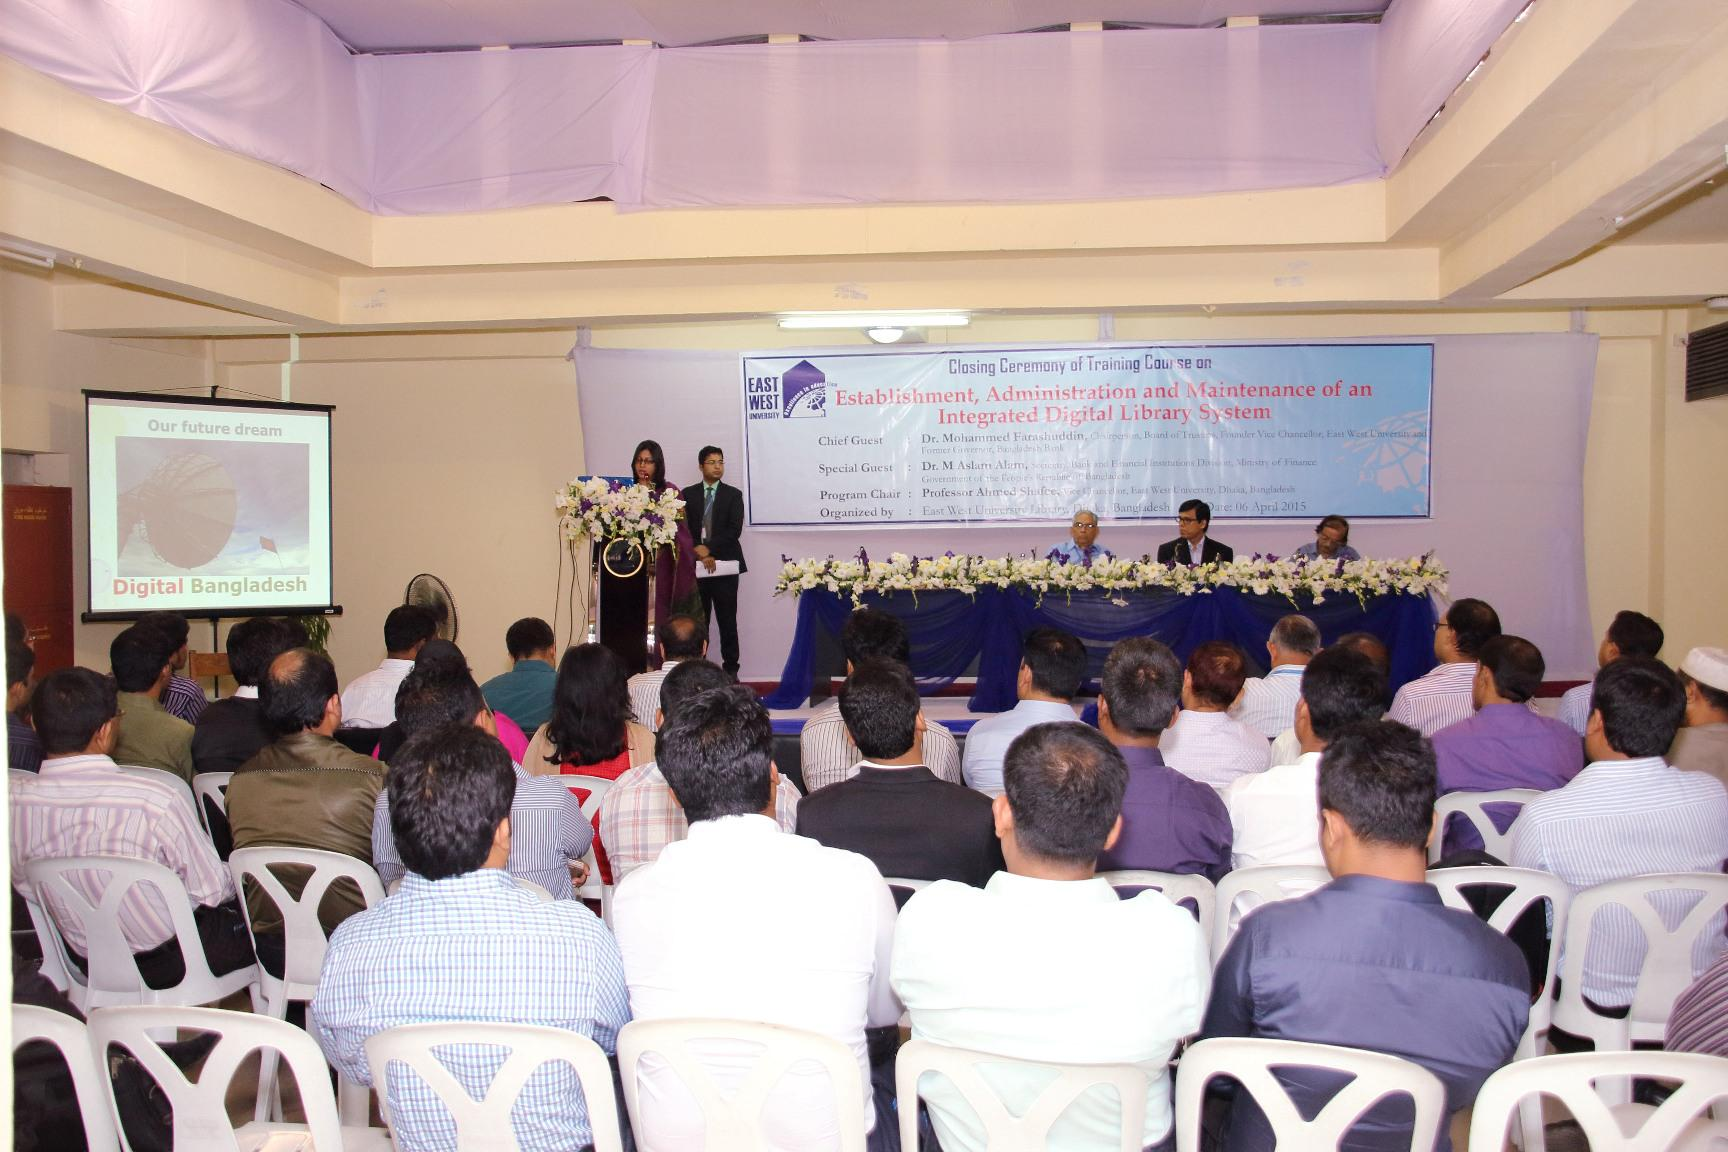 Closing Ceremony of Training Course on Integrated Digital